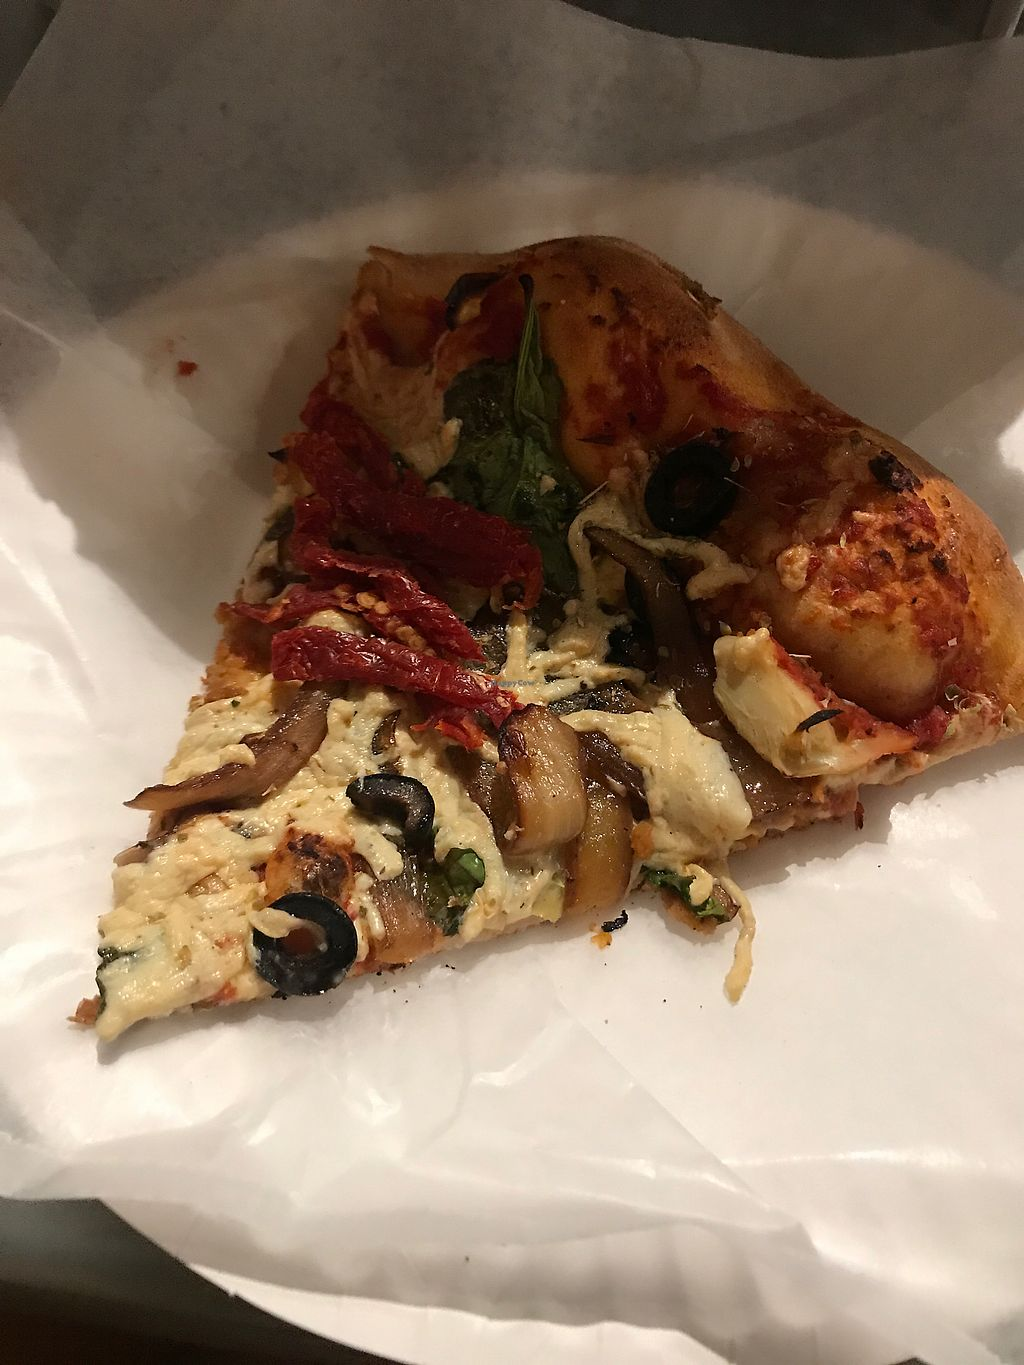 """Photo of Purgatory Pizza  by <a href=""""/members/profile/Vegan_Ness"""">Vegan_Ness</a> <br/>Field of Dreams Pizza Slice <br/> August 28, 2017  - <a href='/contact/abuse/image/26622/298391'>Report</a>"""